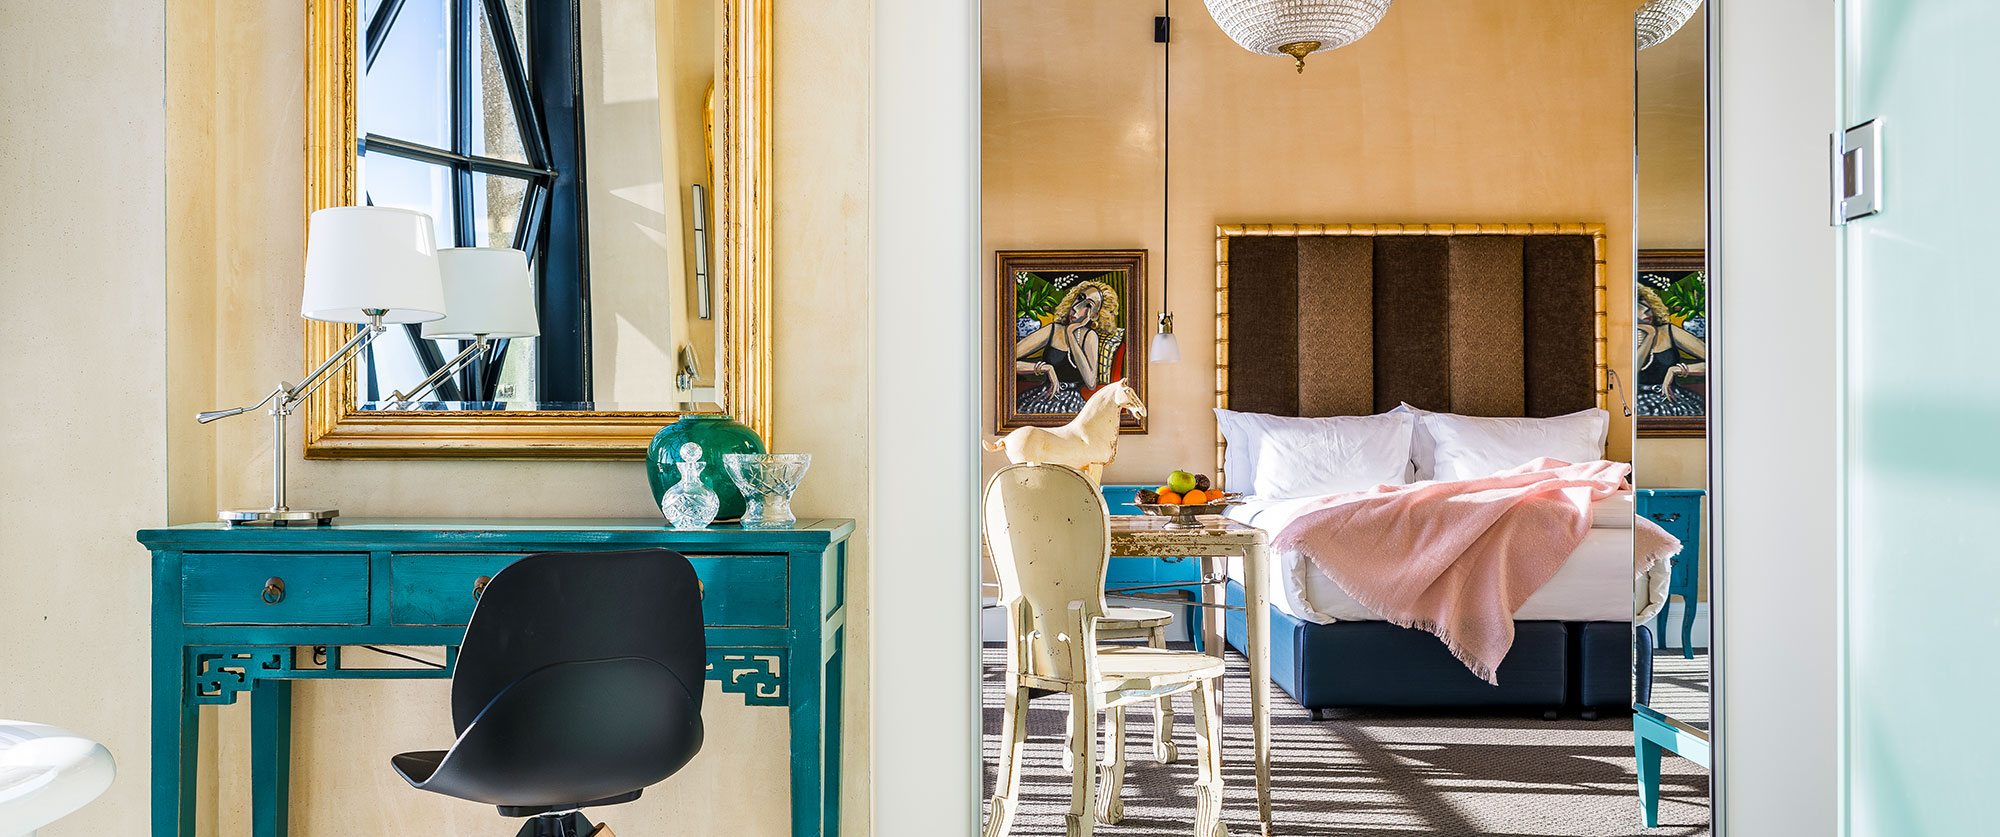 Luxury South Africa Travel Packages - Individually decorated rooms at The Silo Hotel Cape Town